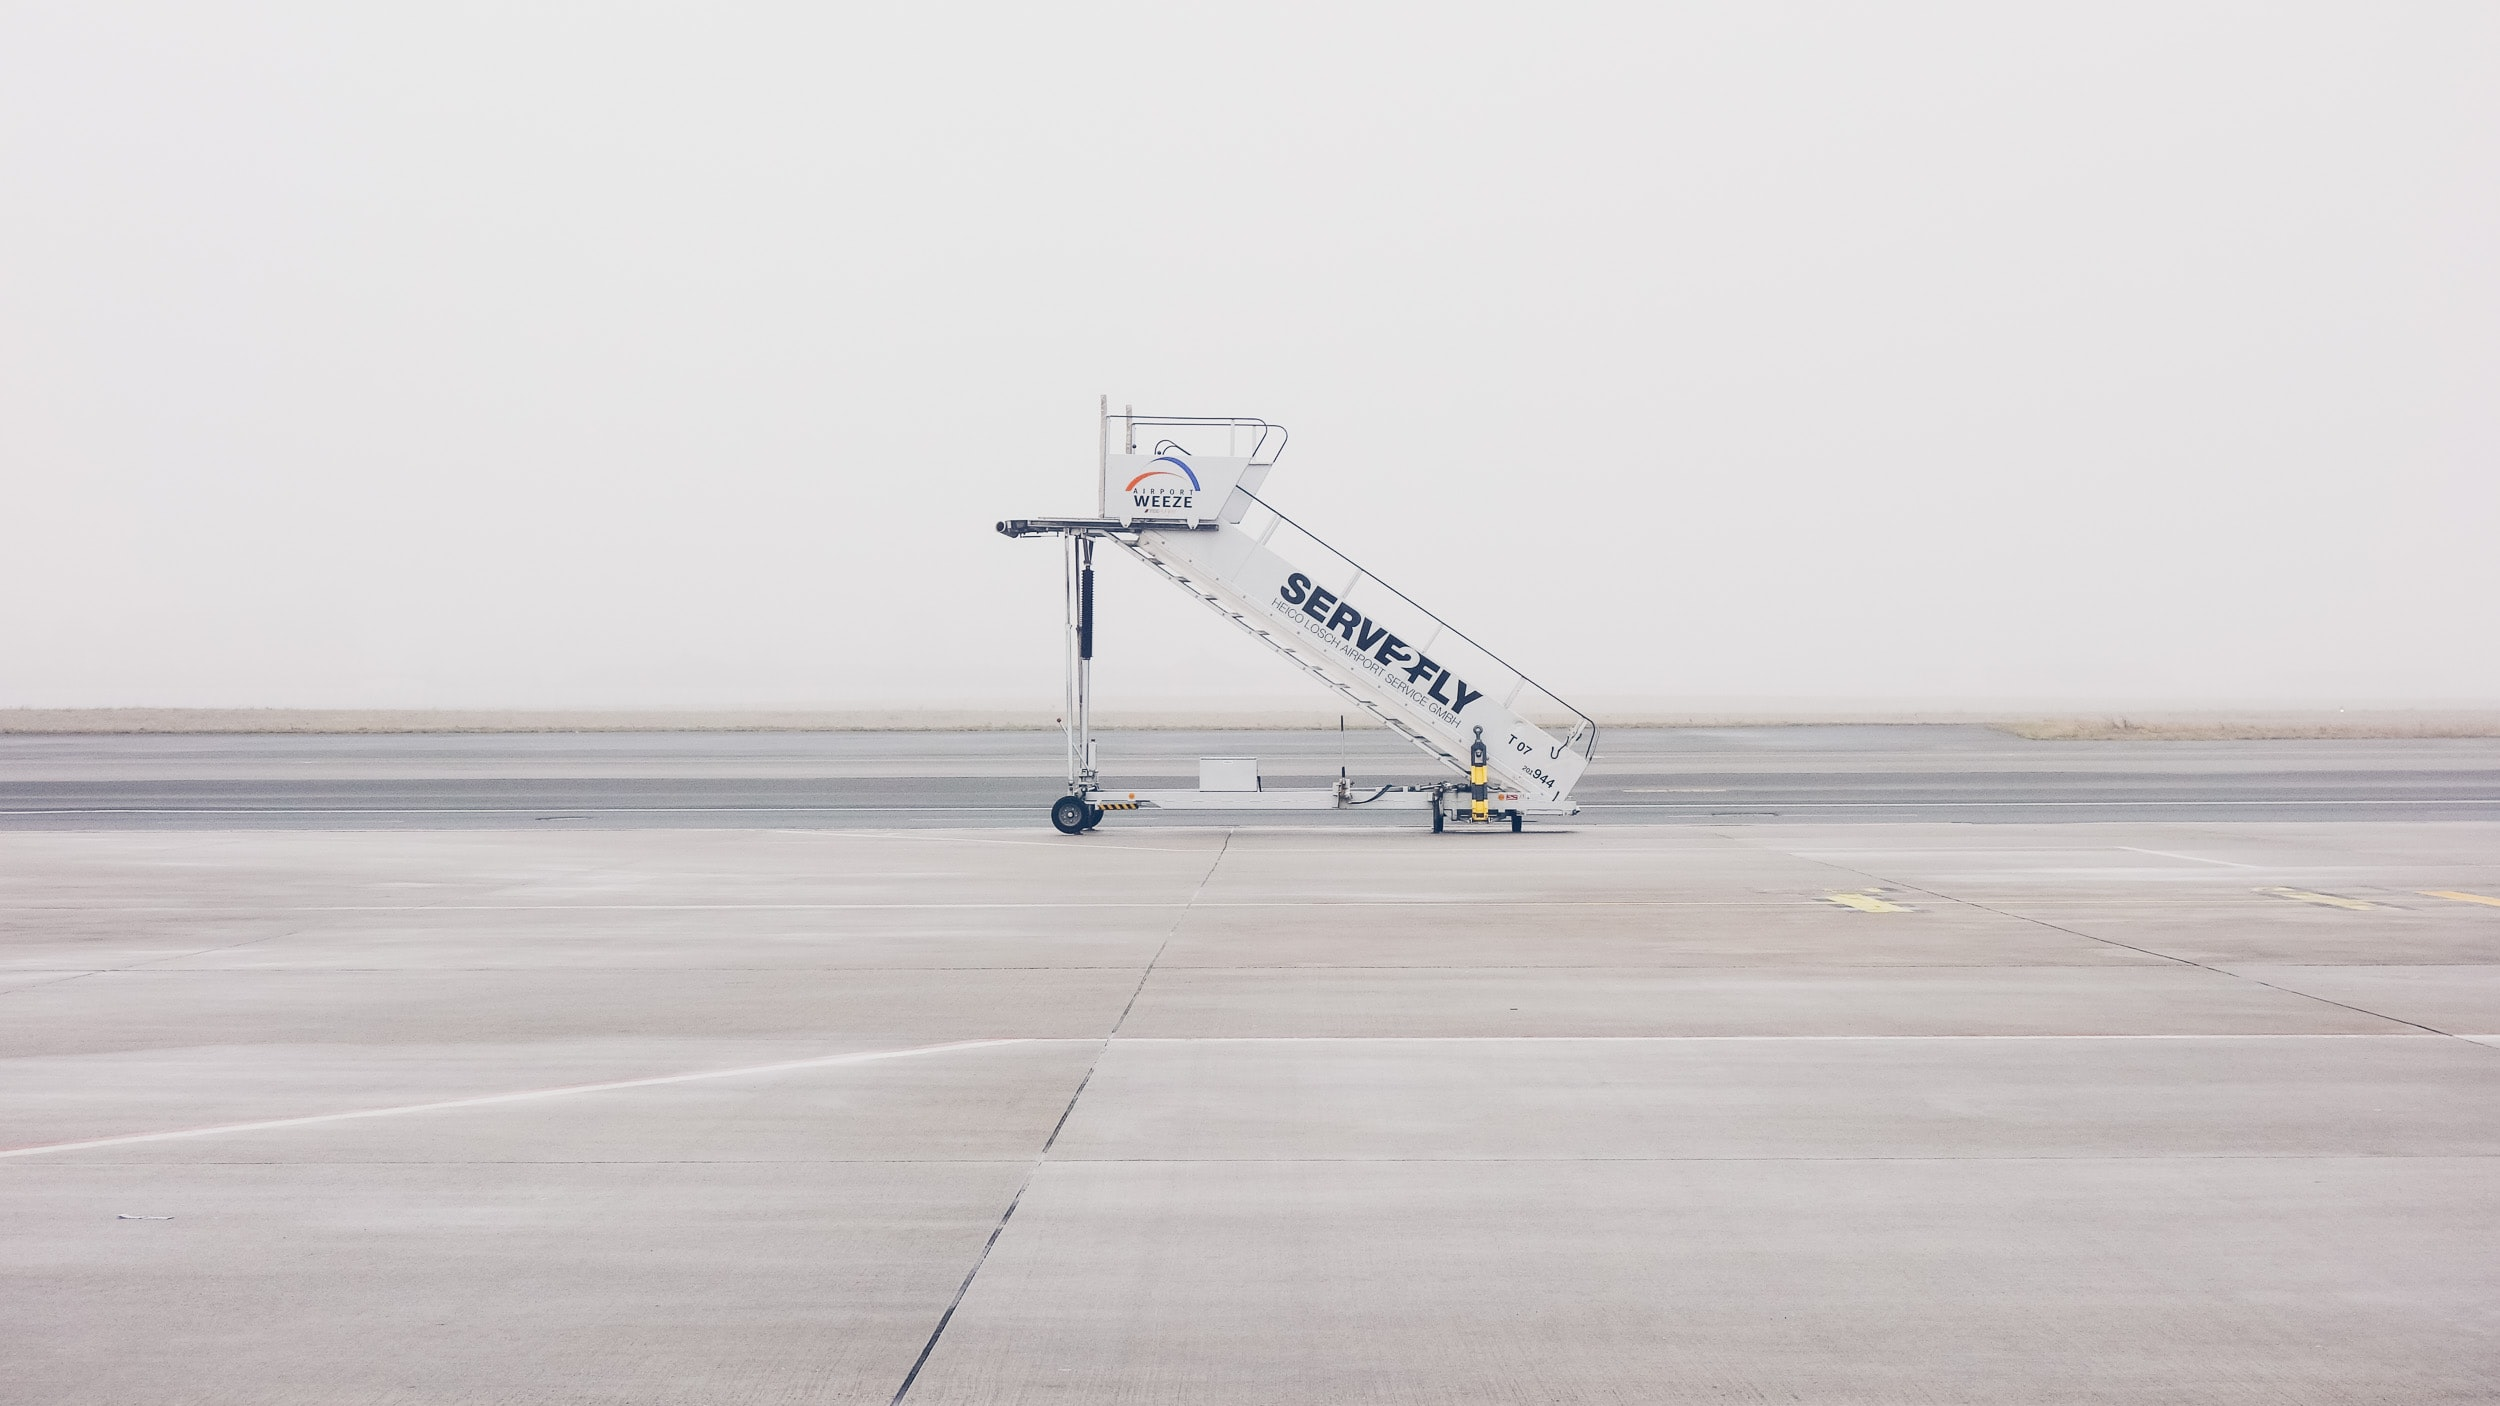 Boarding stairs in the middle of an empty runway